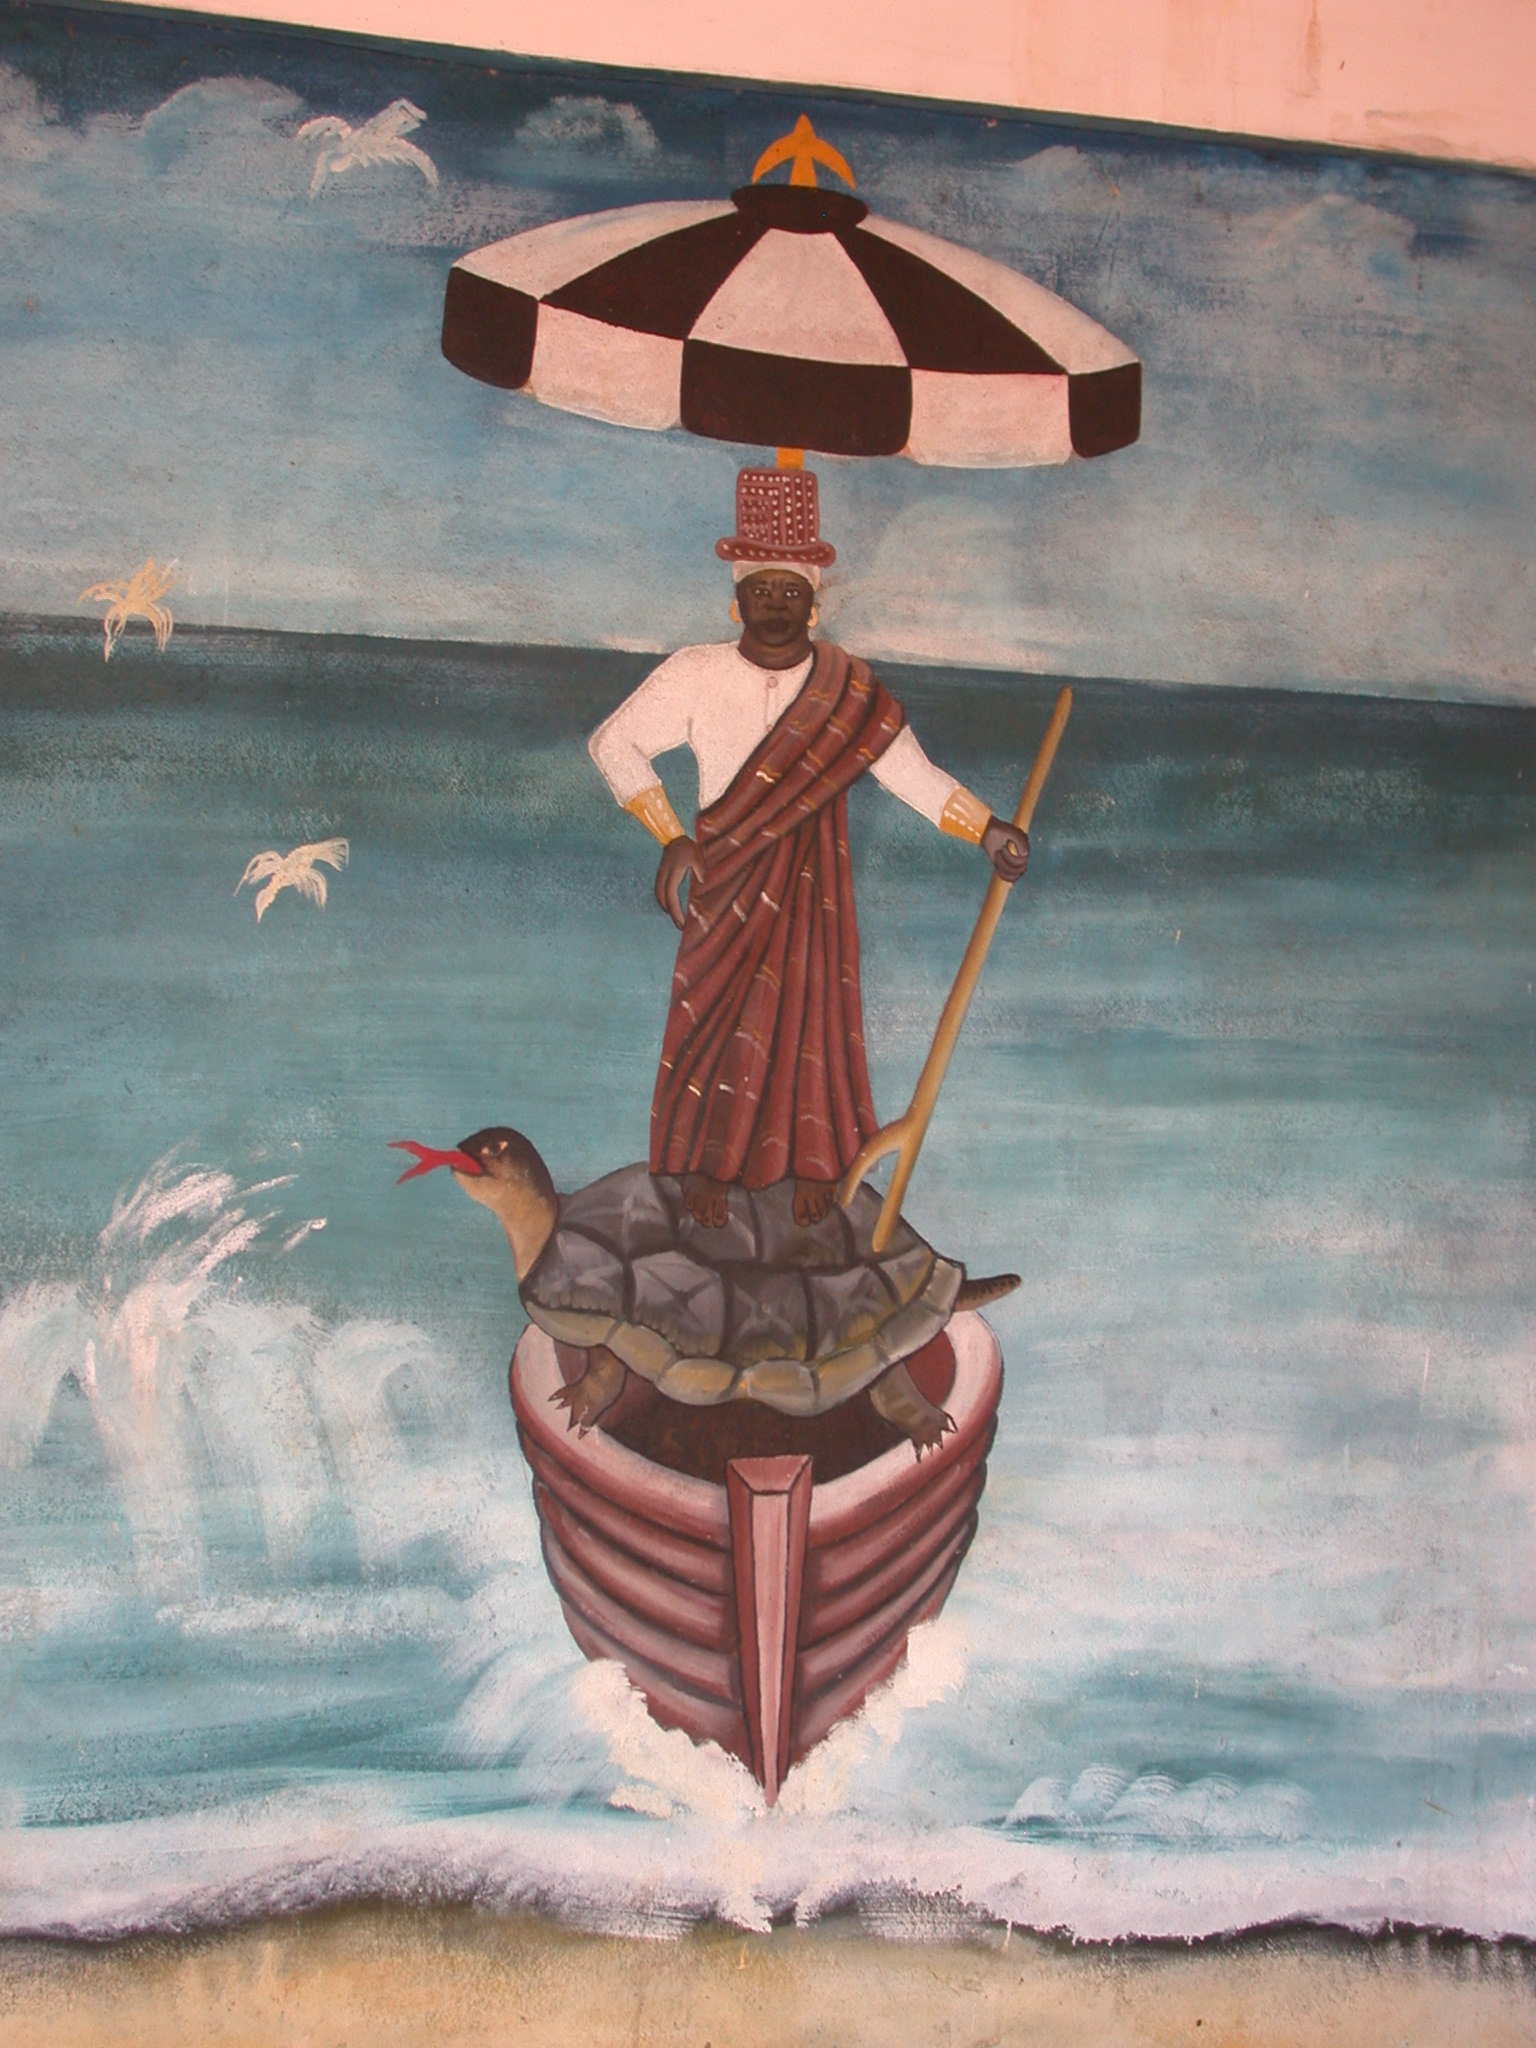 Mural Depicting Daagbo Hounon Walking on Water With Help of Sacred Turtle, Daagbo Hounon Dodo Palace, Ouidah, Benin